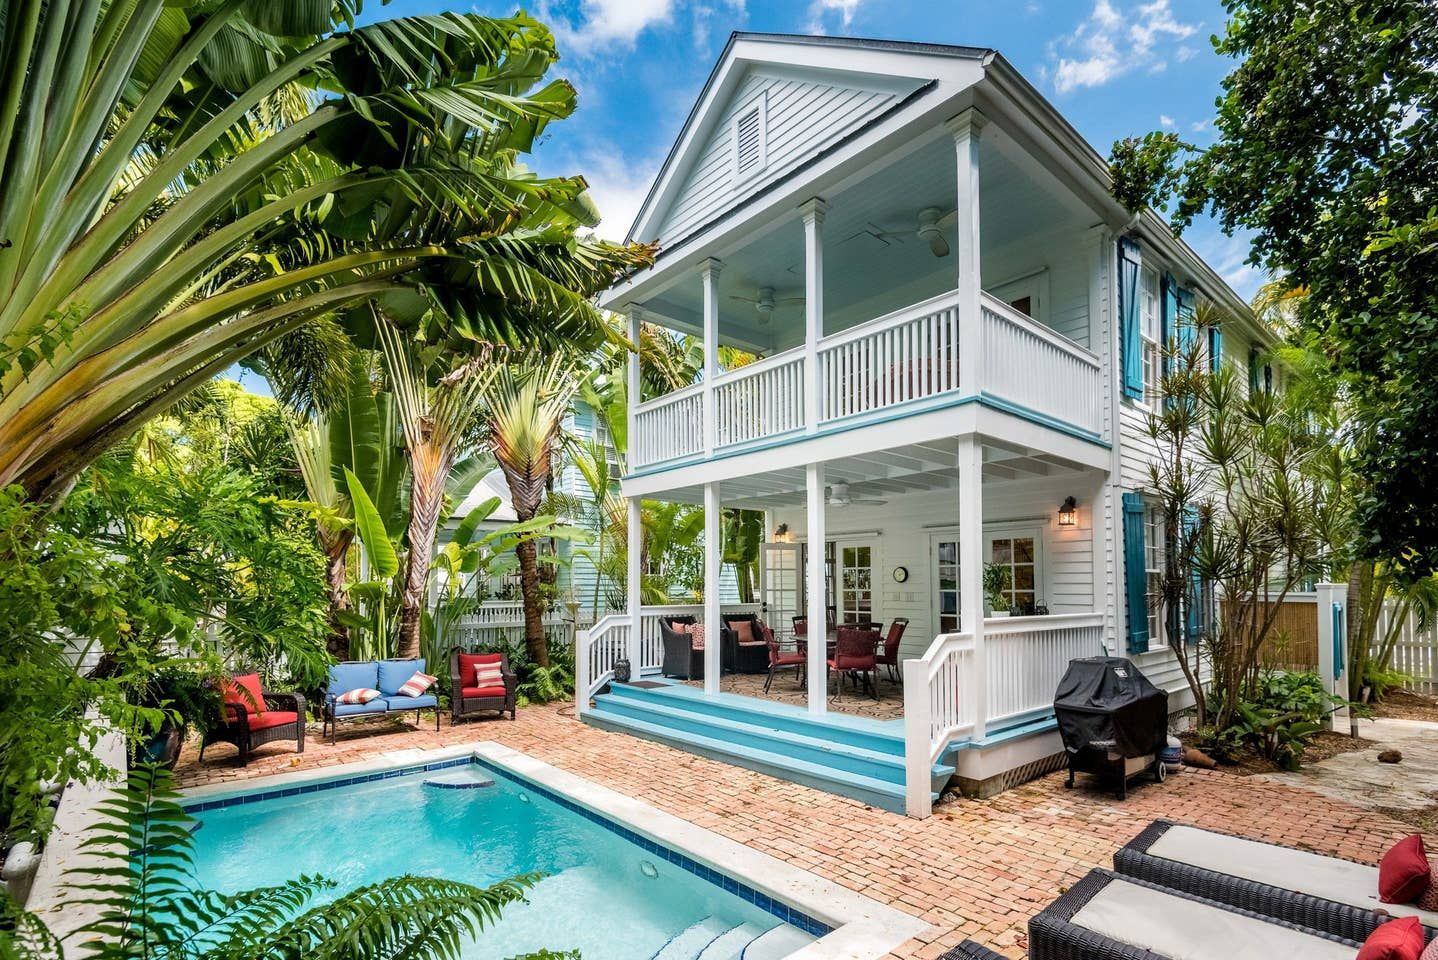 Dogfriendly home w/ private pool & space to lounge walk